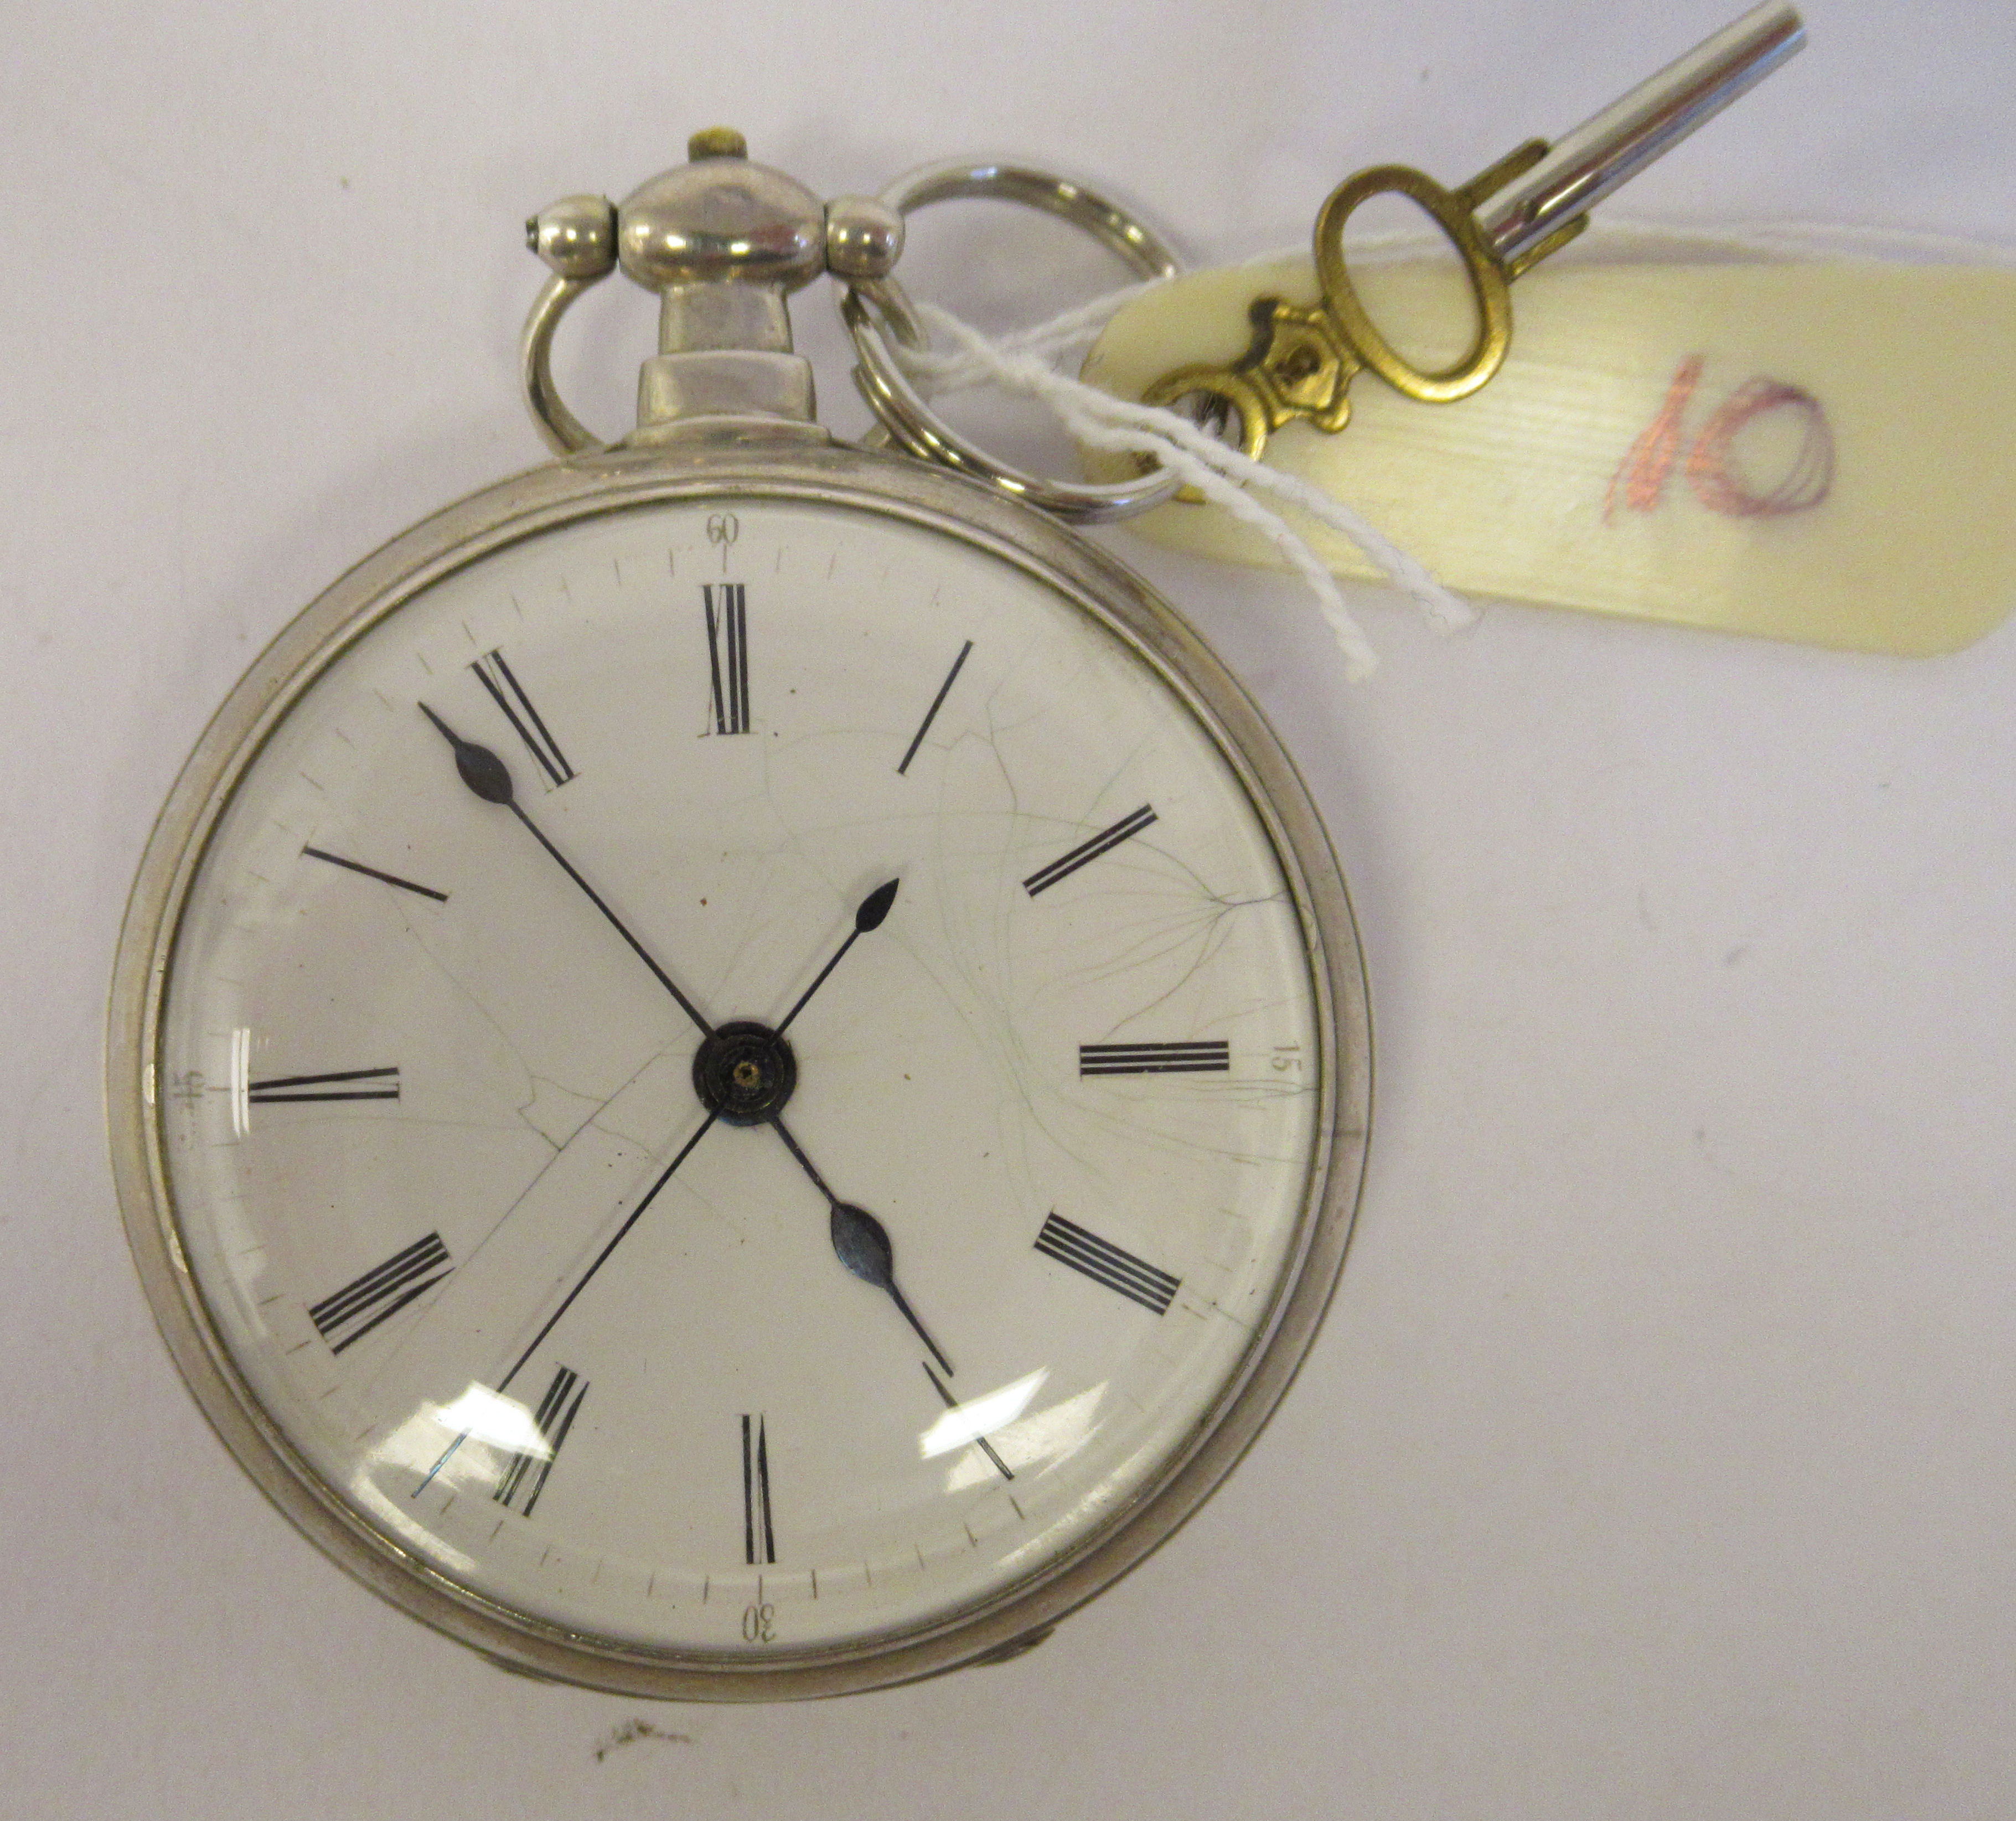 A 19thC silver cased pocket watch, the jewelled movement with sweeping seconds, protected by a